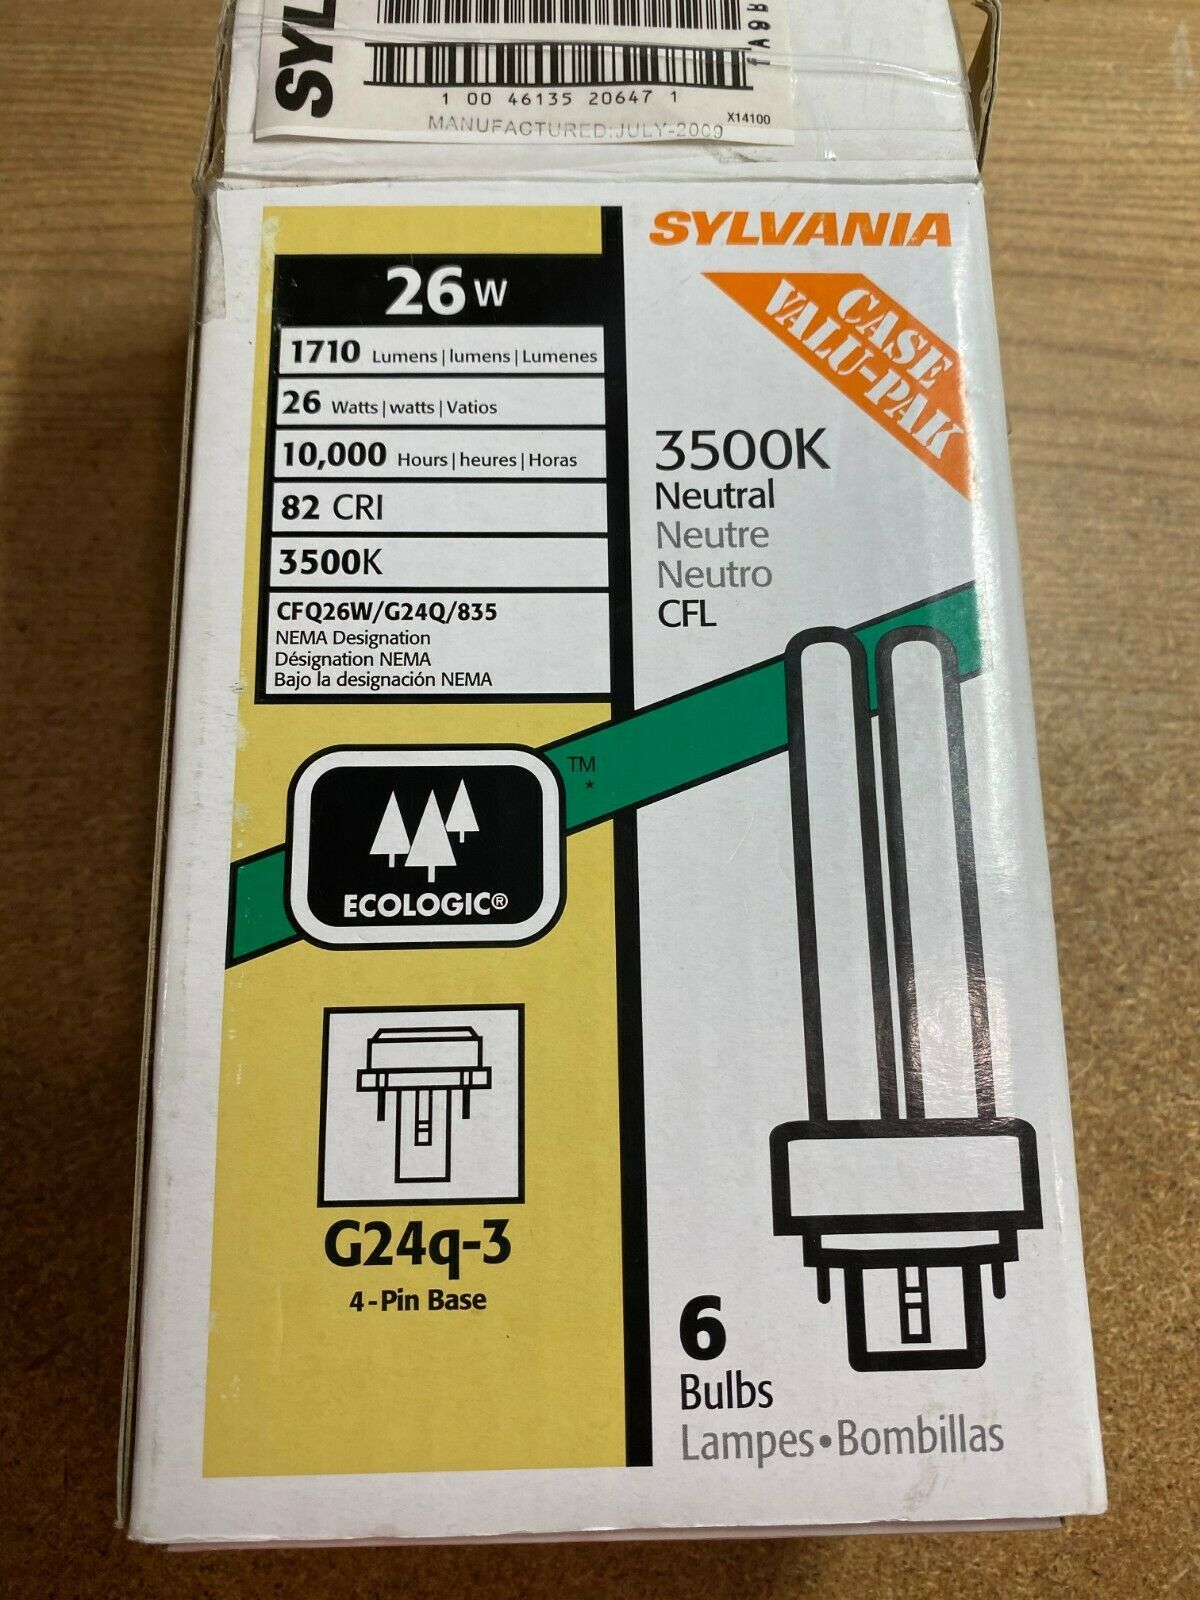 Primary image for Lot Of 5 Sylvania 26W CFL 4-pin G24q-3 Base Bulb 2-Tubes 3500k Neutral